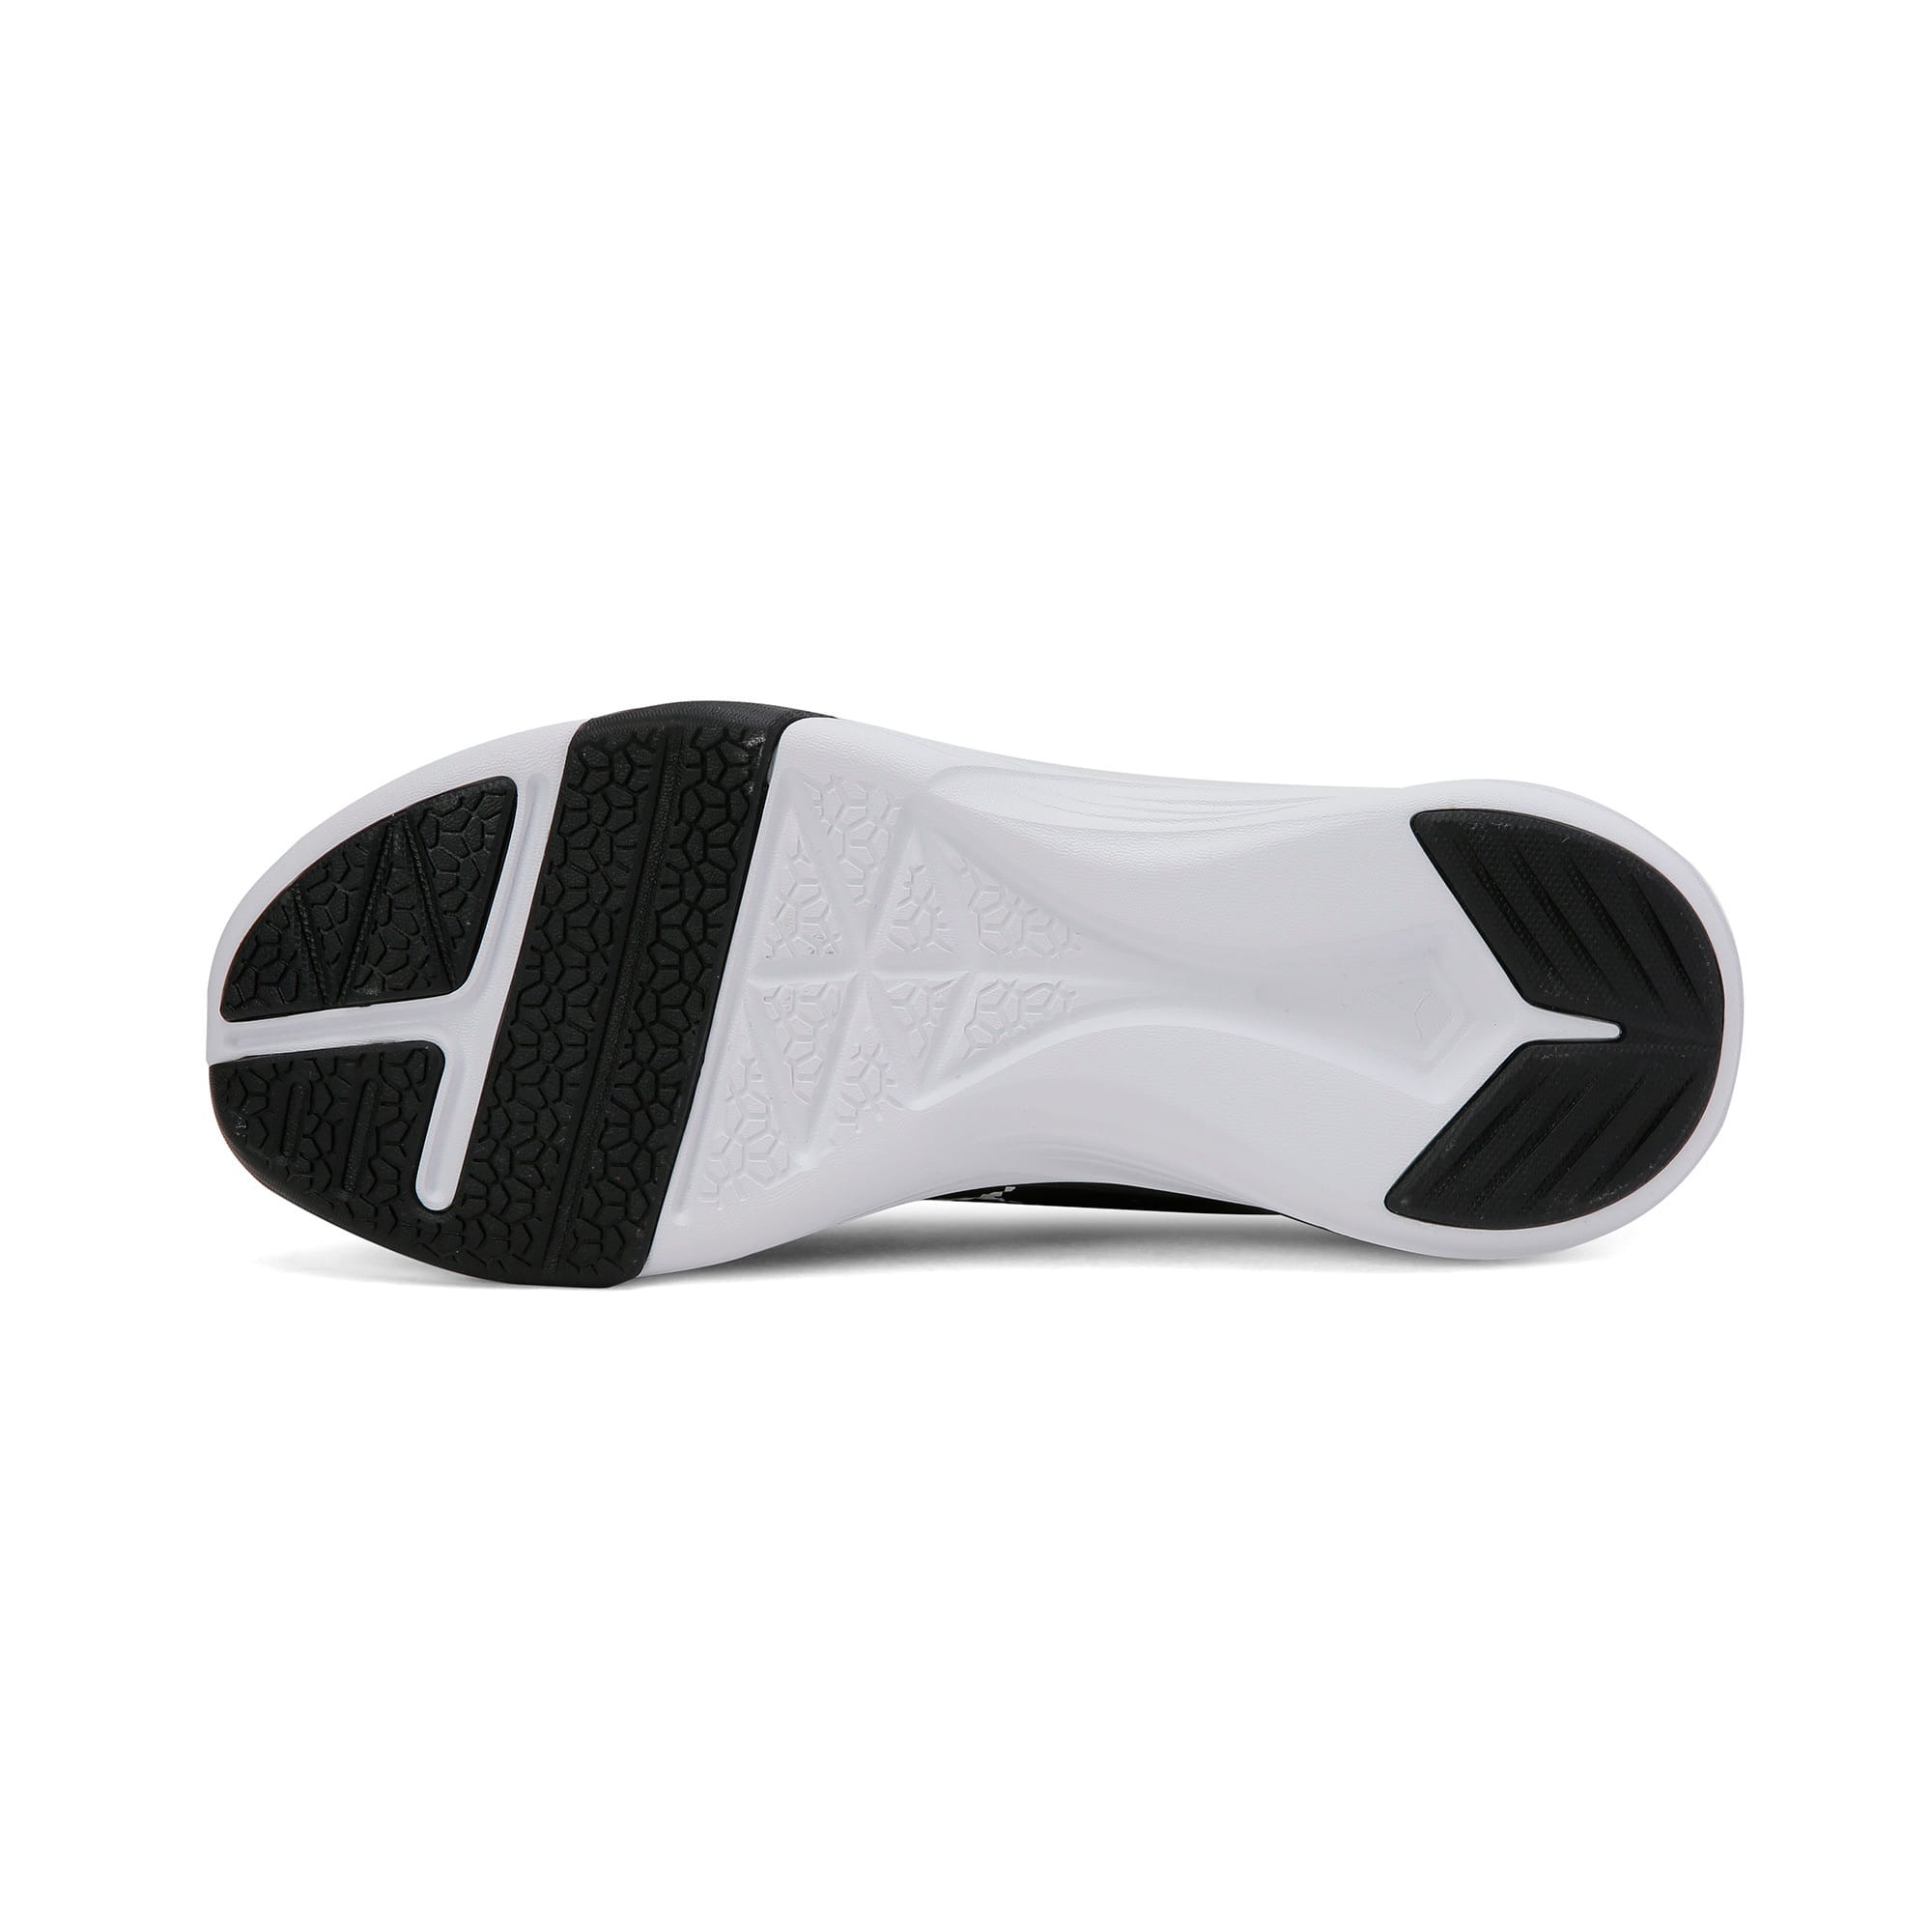 Thumbnail 6 of Aura XT Men's Trainers, Puma Black-Puma White, medium-IND